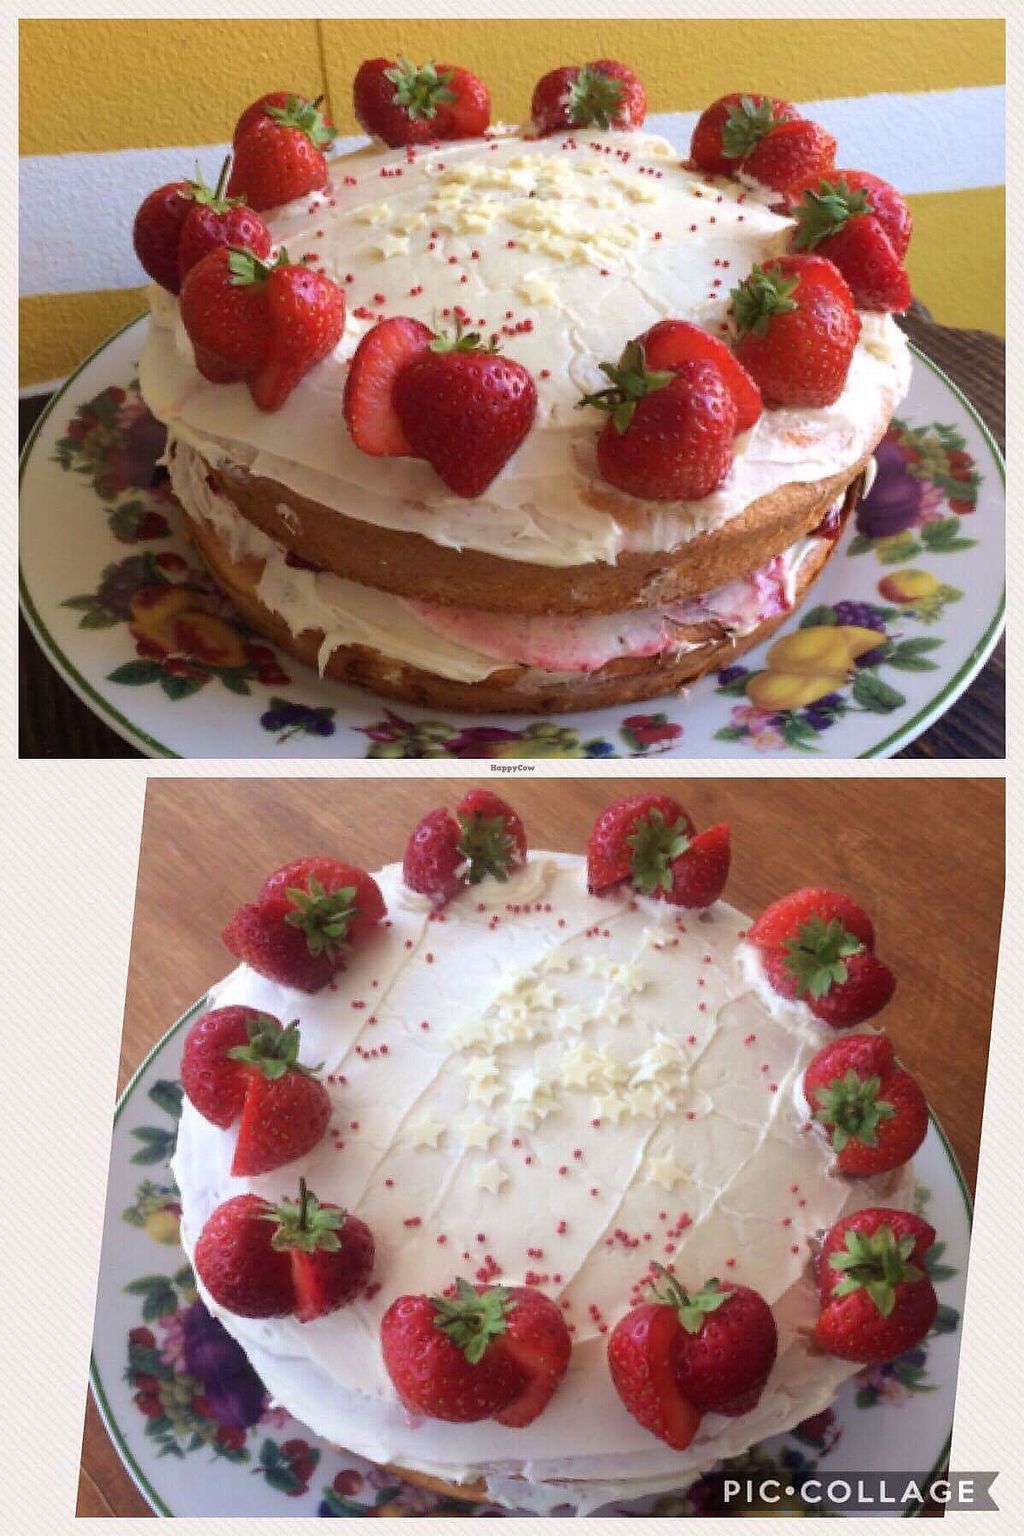 """Photo of T-Potters Cafe and Studio  by <a href=""""/members/profile/BryonyTpot"""">BryonyTpot</a> <br/>strawberry cake <br/> August 28, 2017  - <a href='/contact/abuse/image/96378/298434'>Report</a>"""